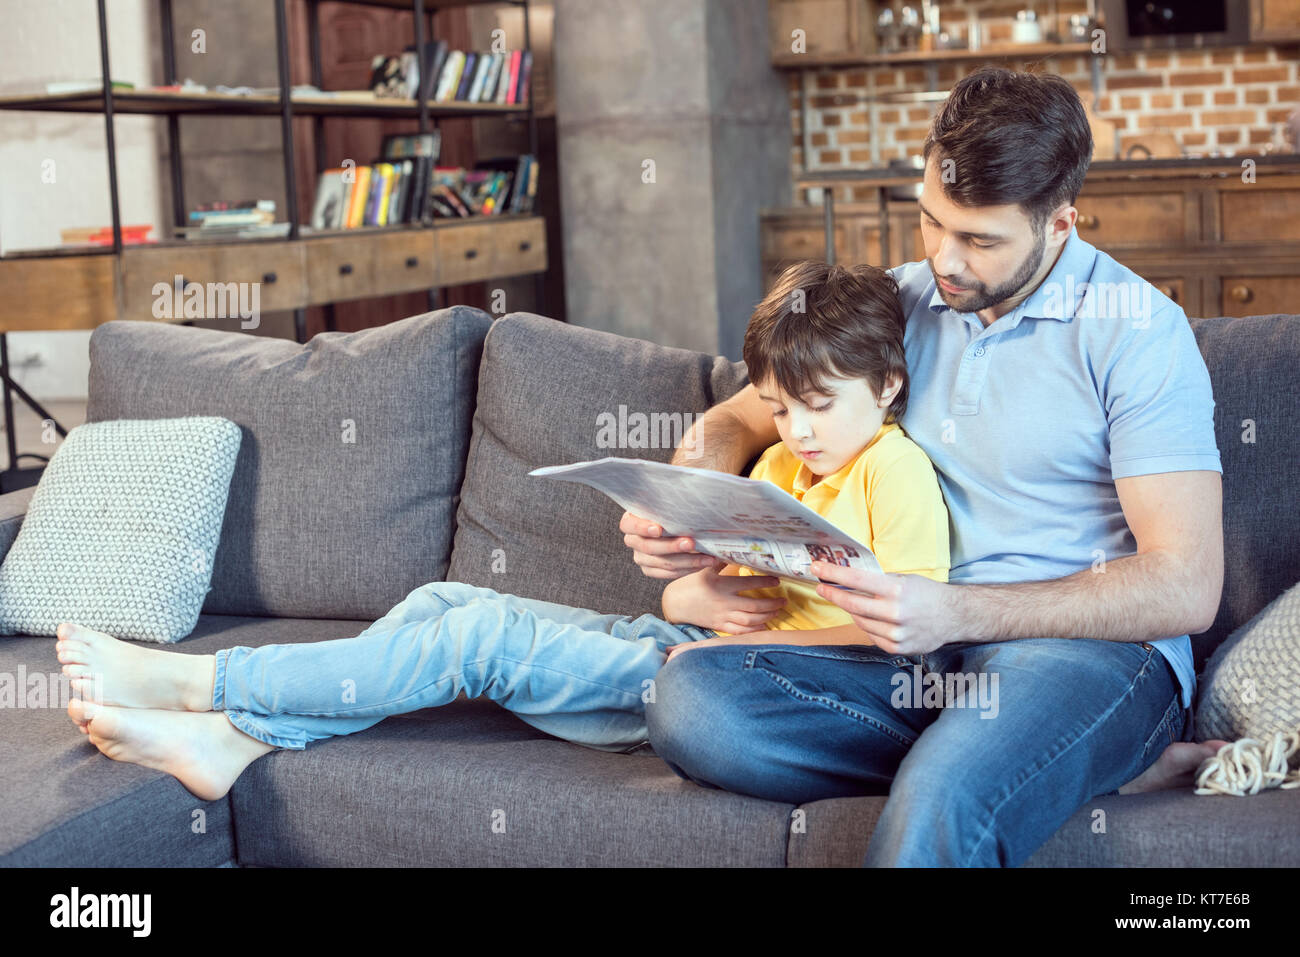 focused father and son reading newspaper together at home - Stock Image